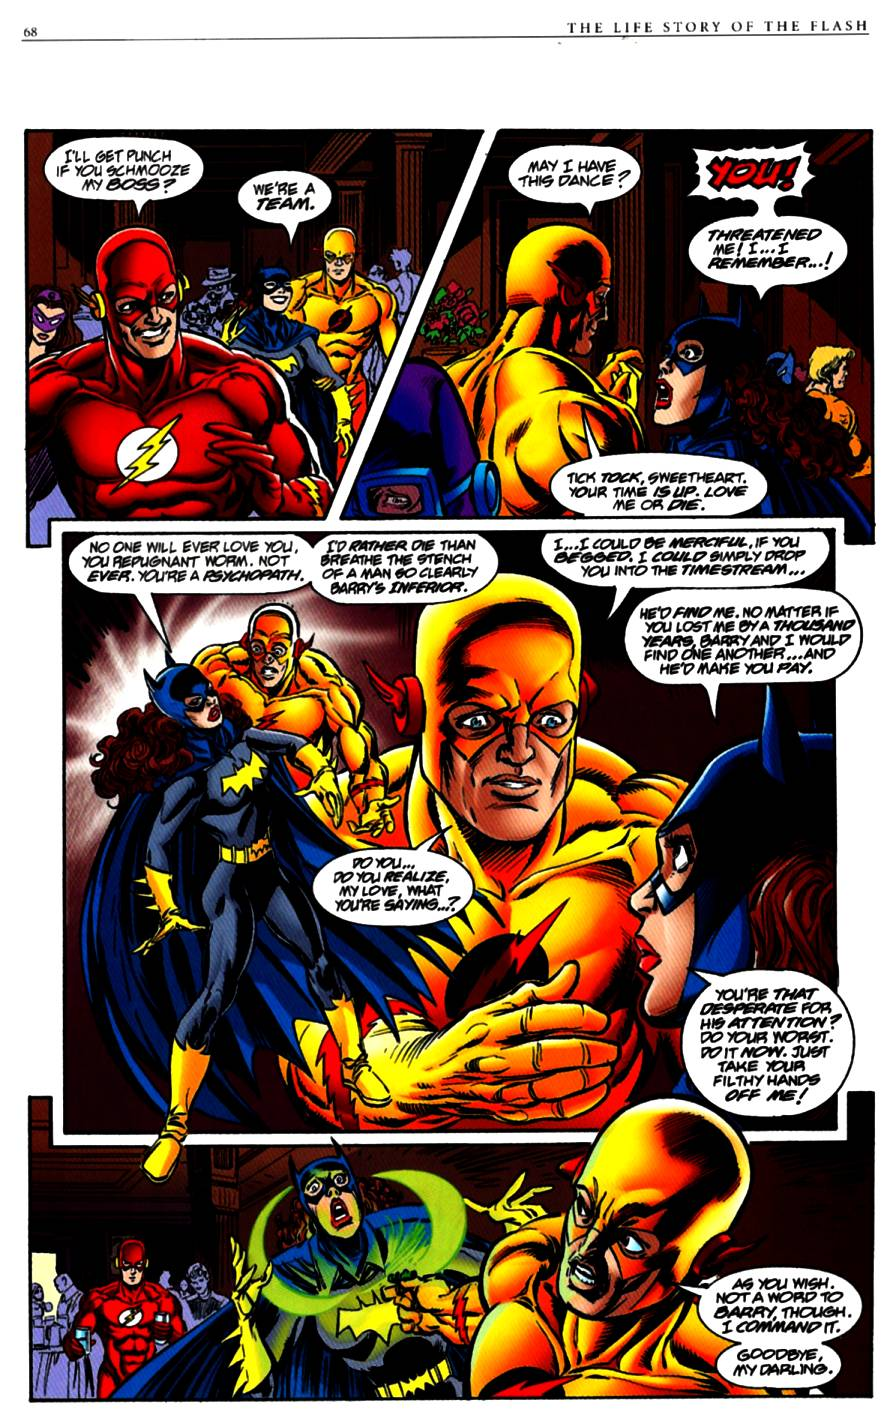 Read online The Life Story of the Flash comic -  Issue # Full - 70